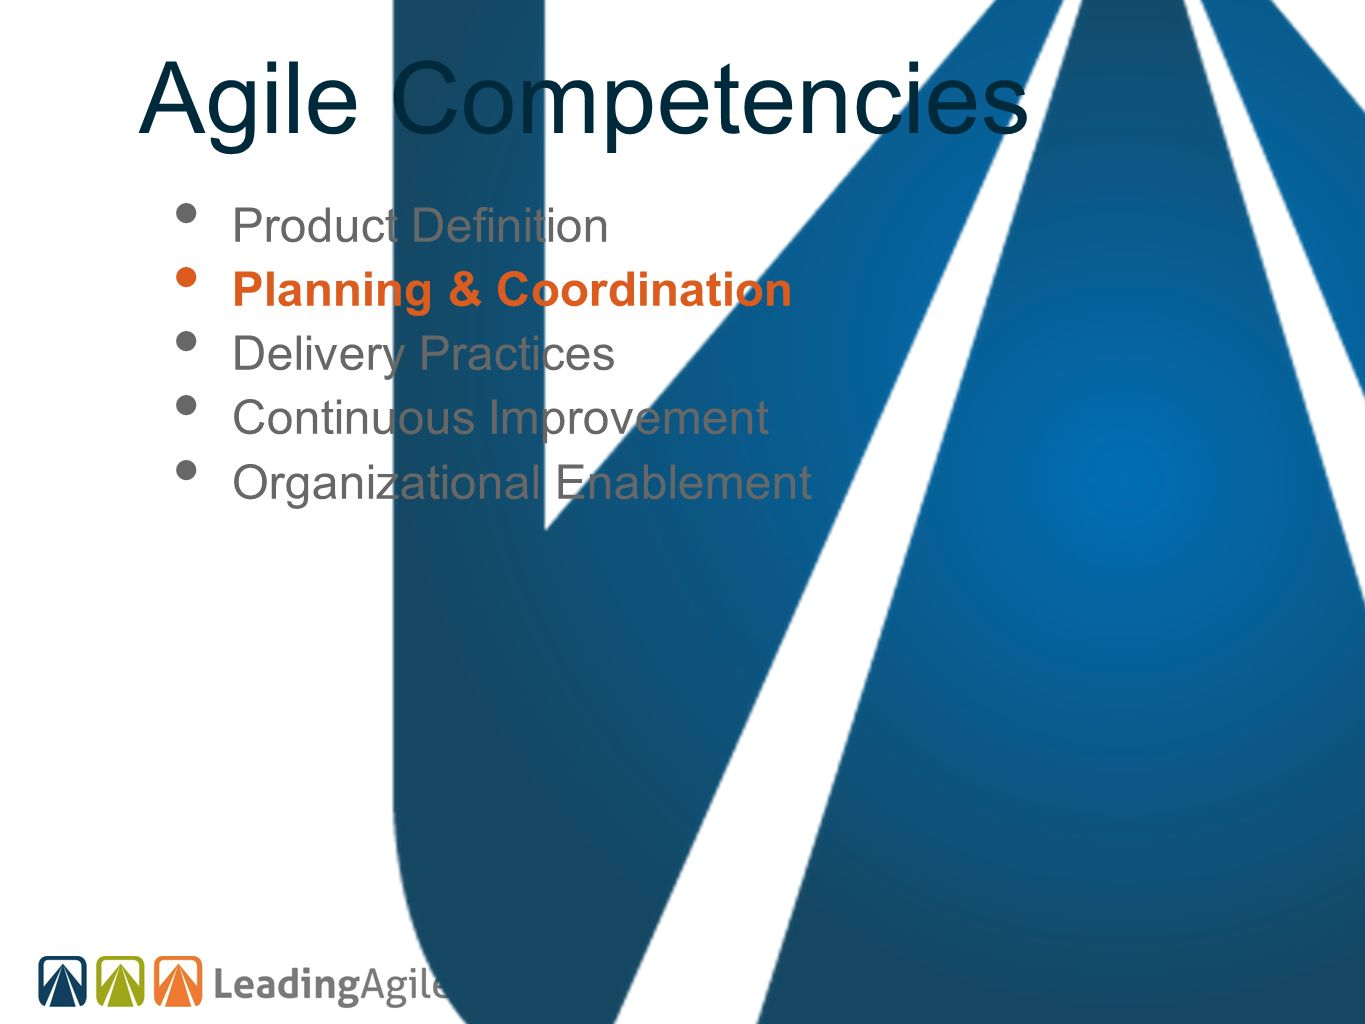 Agile Competencies Product Definition Planning & Coordination Delivery Practices Continuous Improvement Organizational Enablement